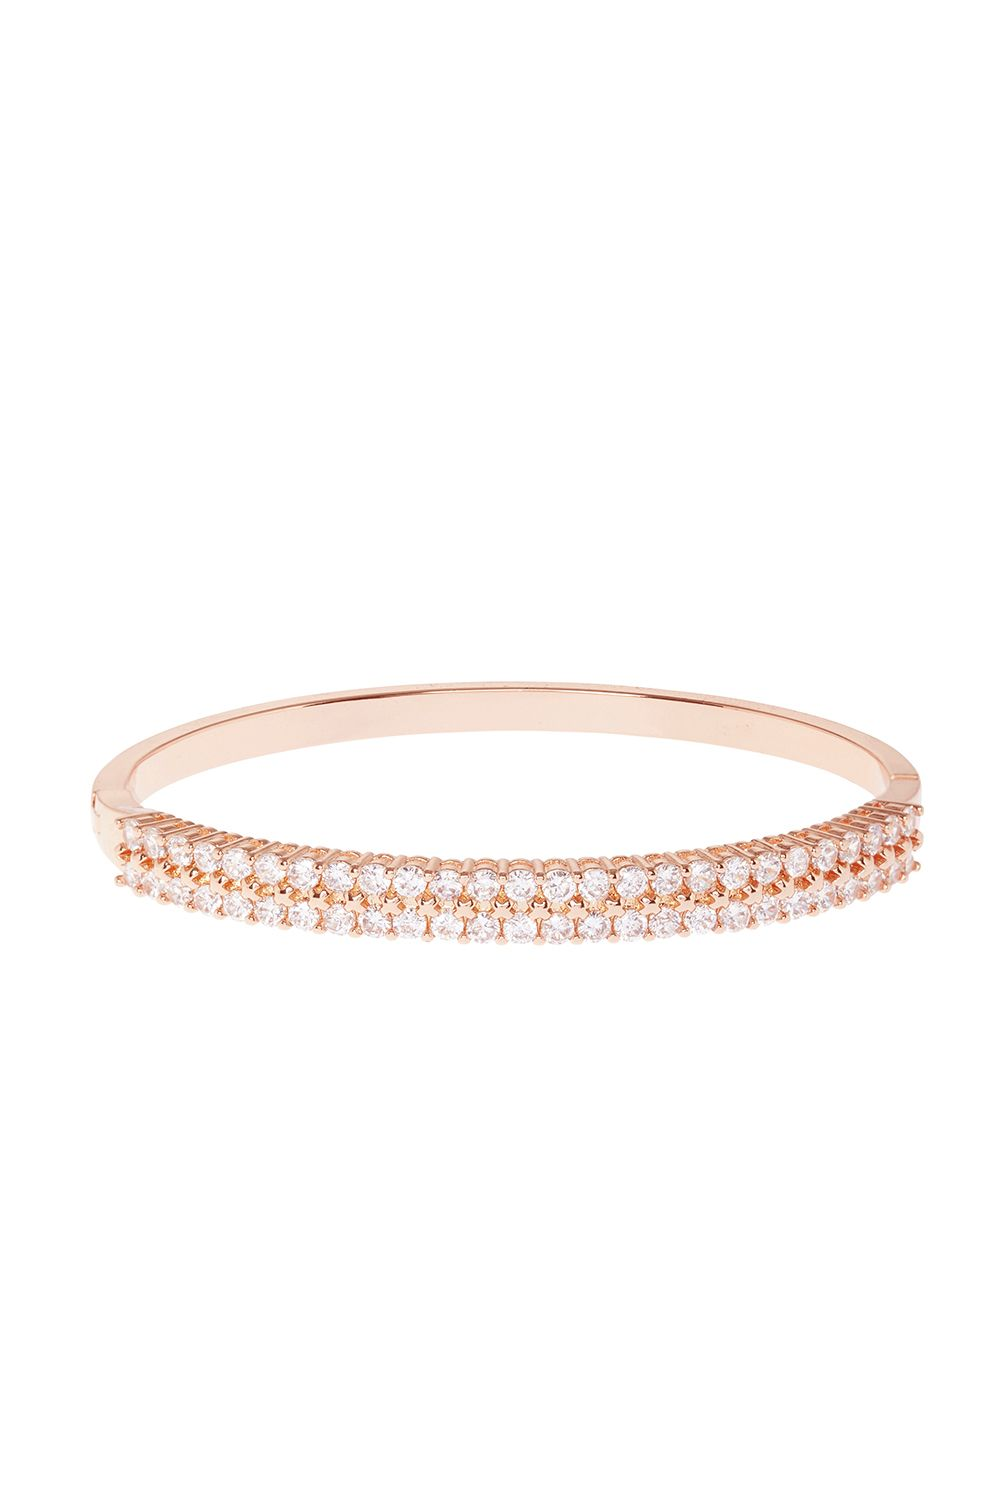 Coast Adelia Bracelet, Rose Gold